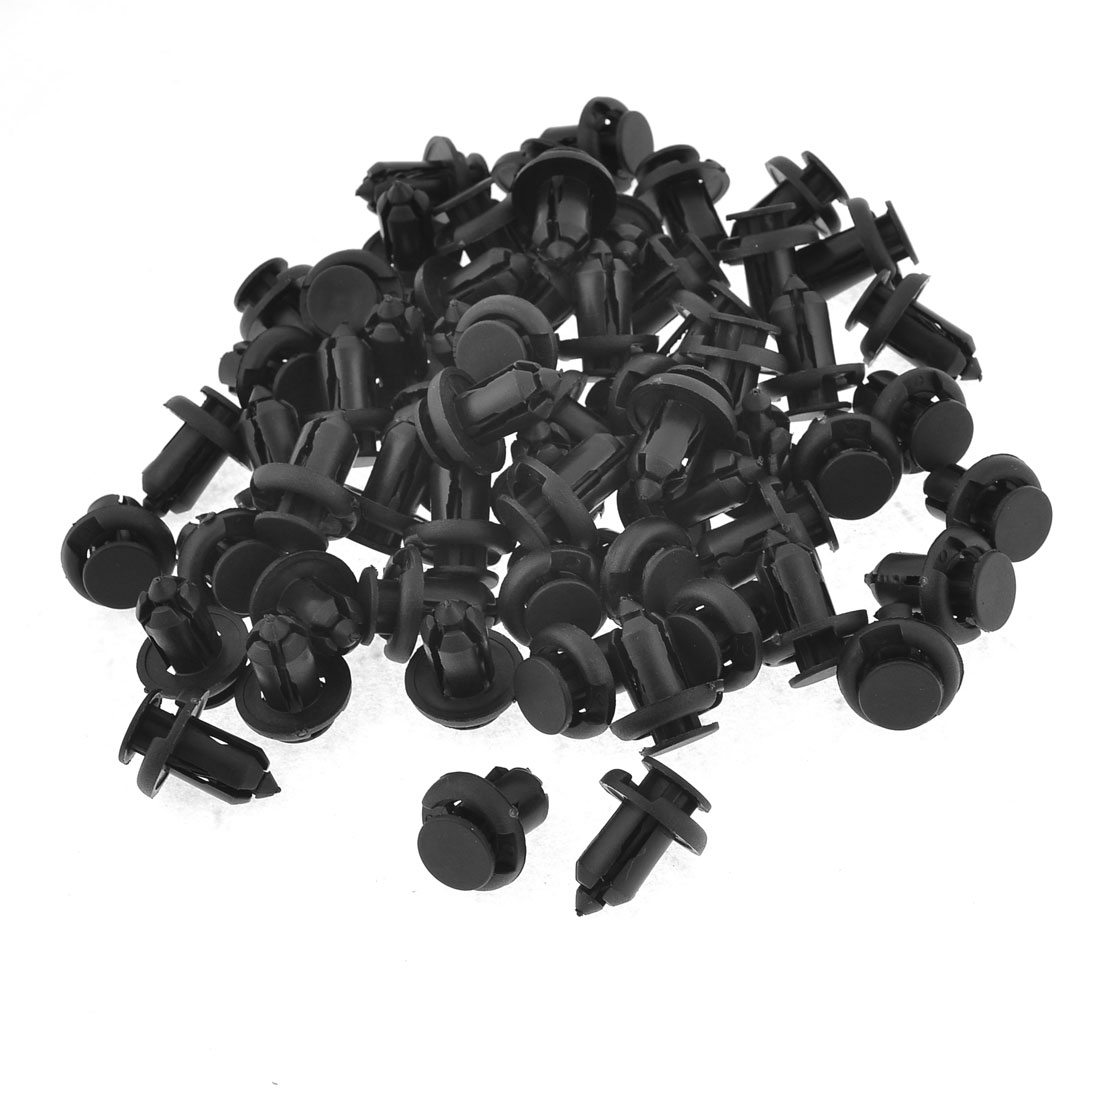 Auto Car Black Plastic Bumper Buckle Rivets Fastener Clips 100 Pcs 27 x 20mm